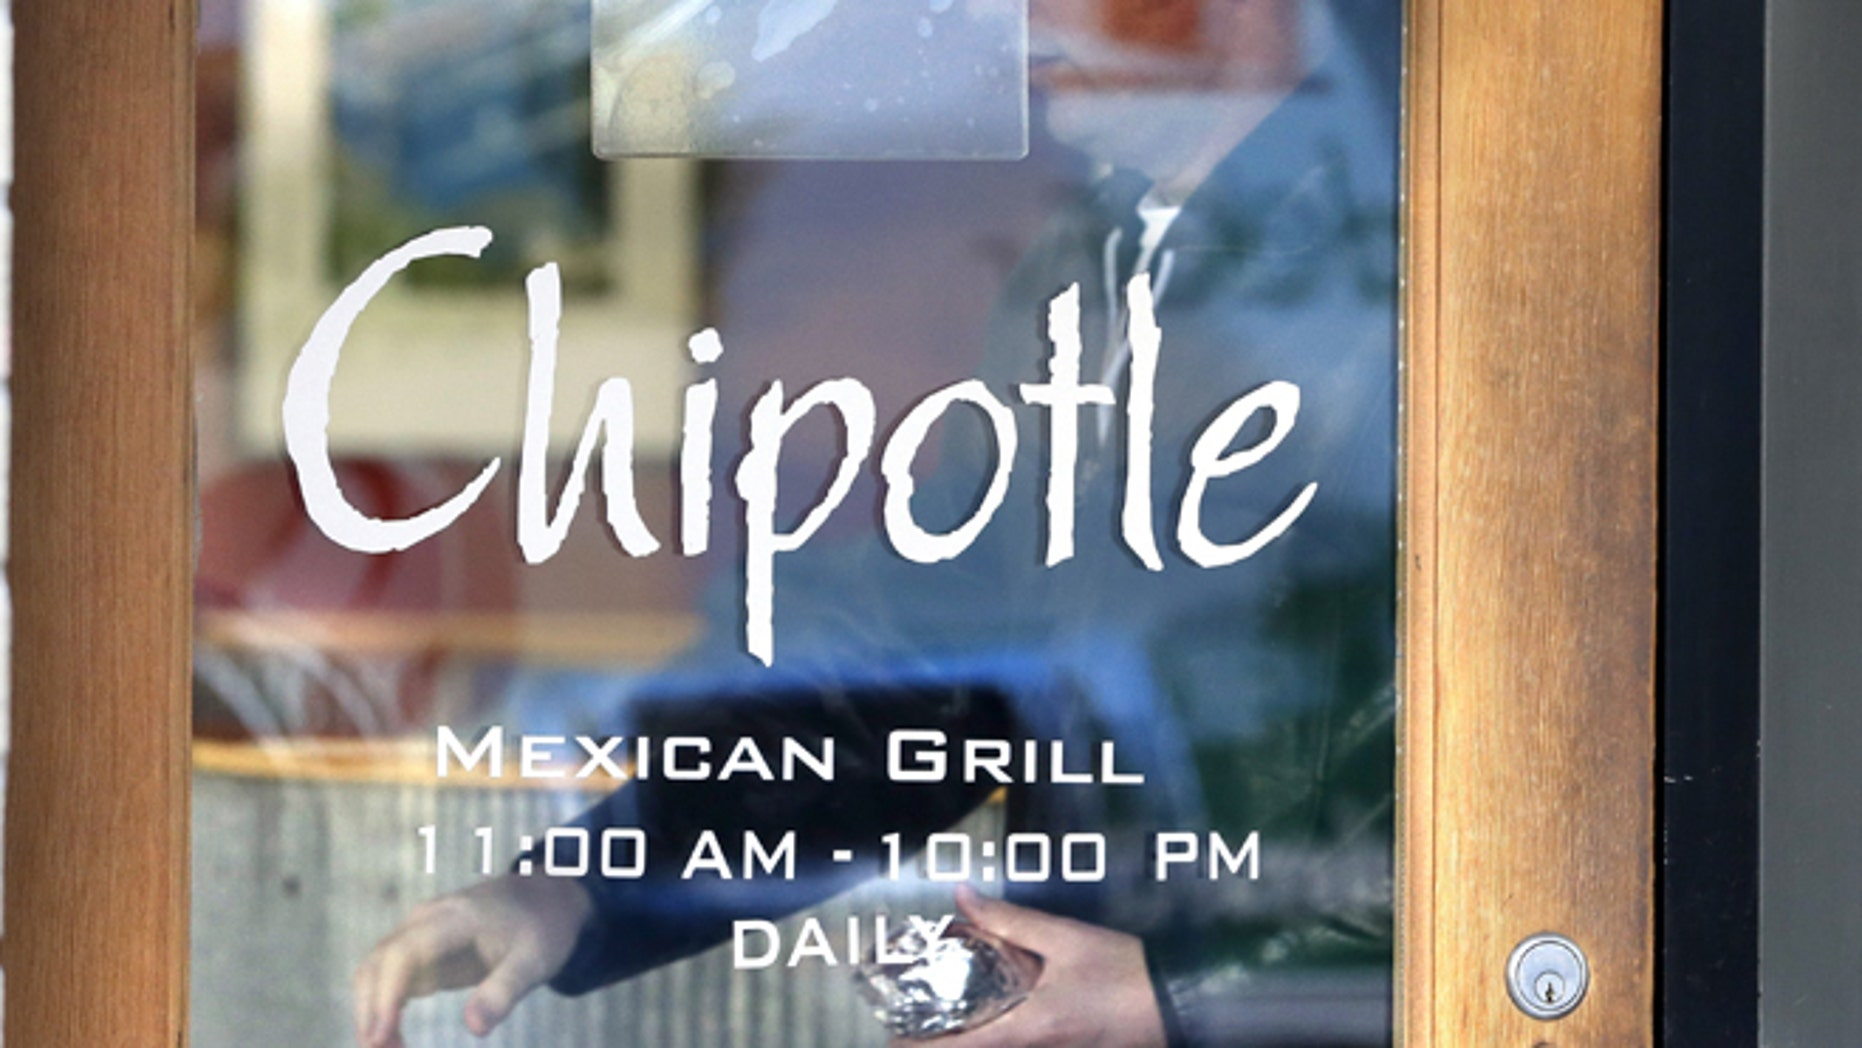 Chipotle Fires Manager Who Refused To Serve Black Men But May Reconsider